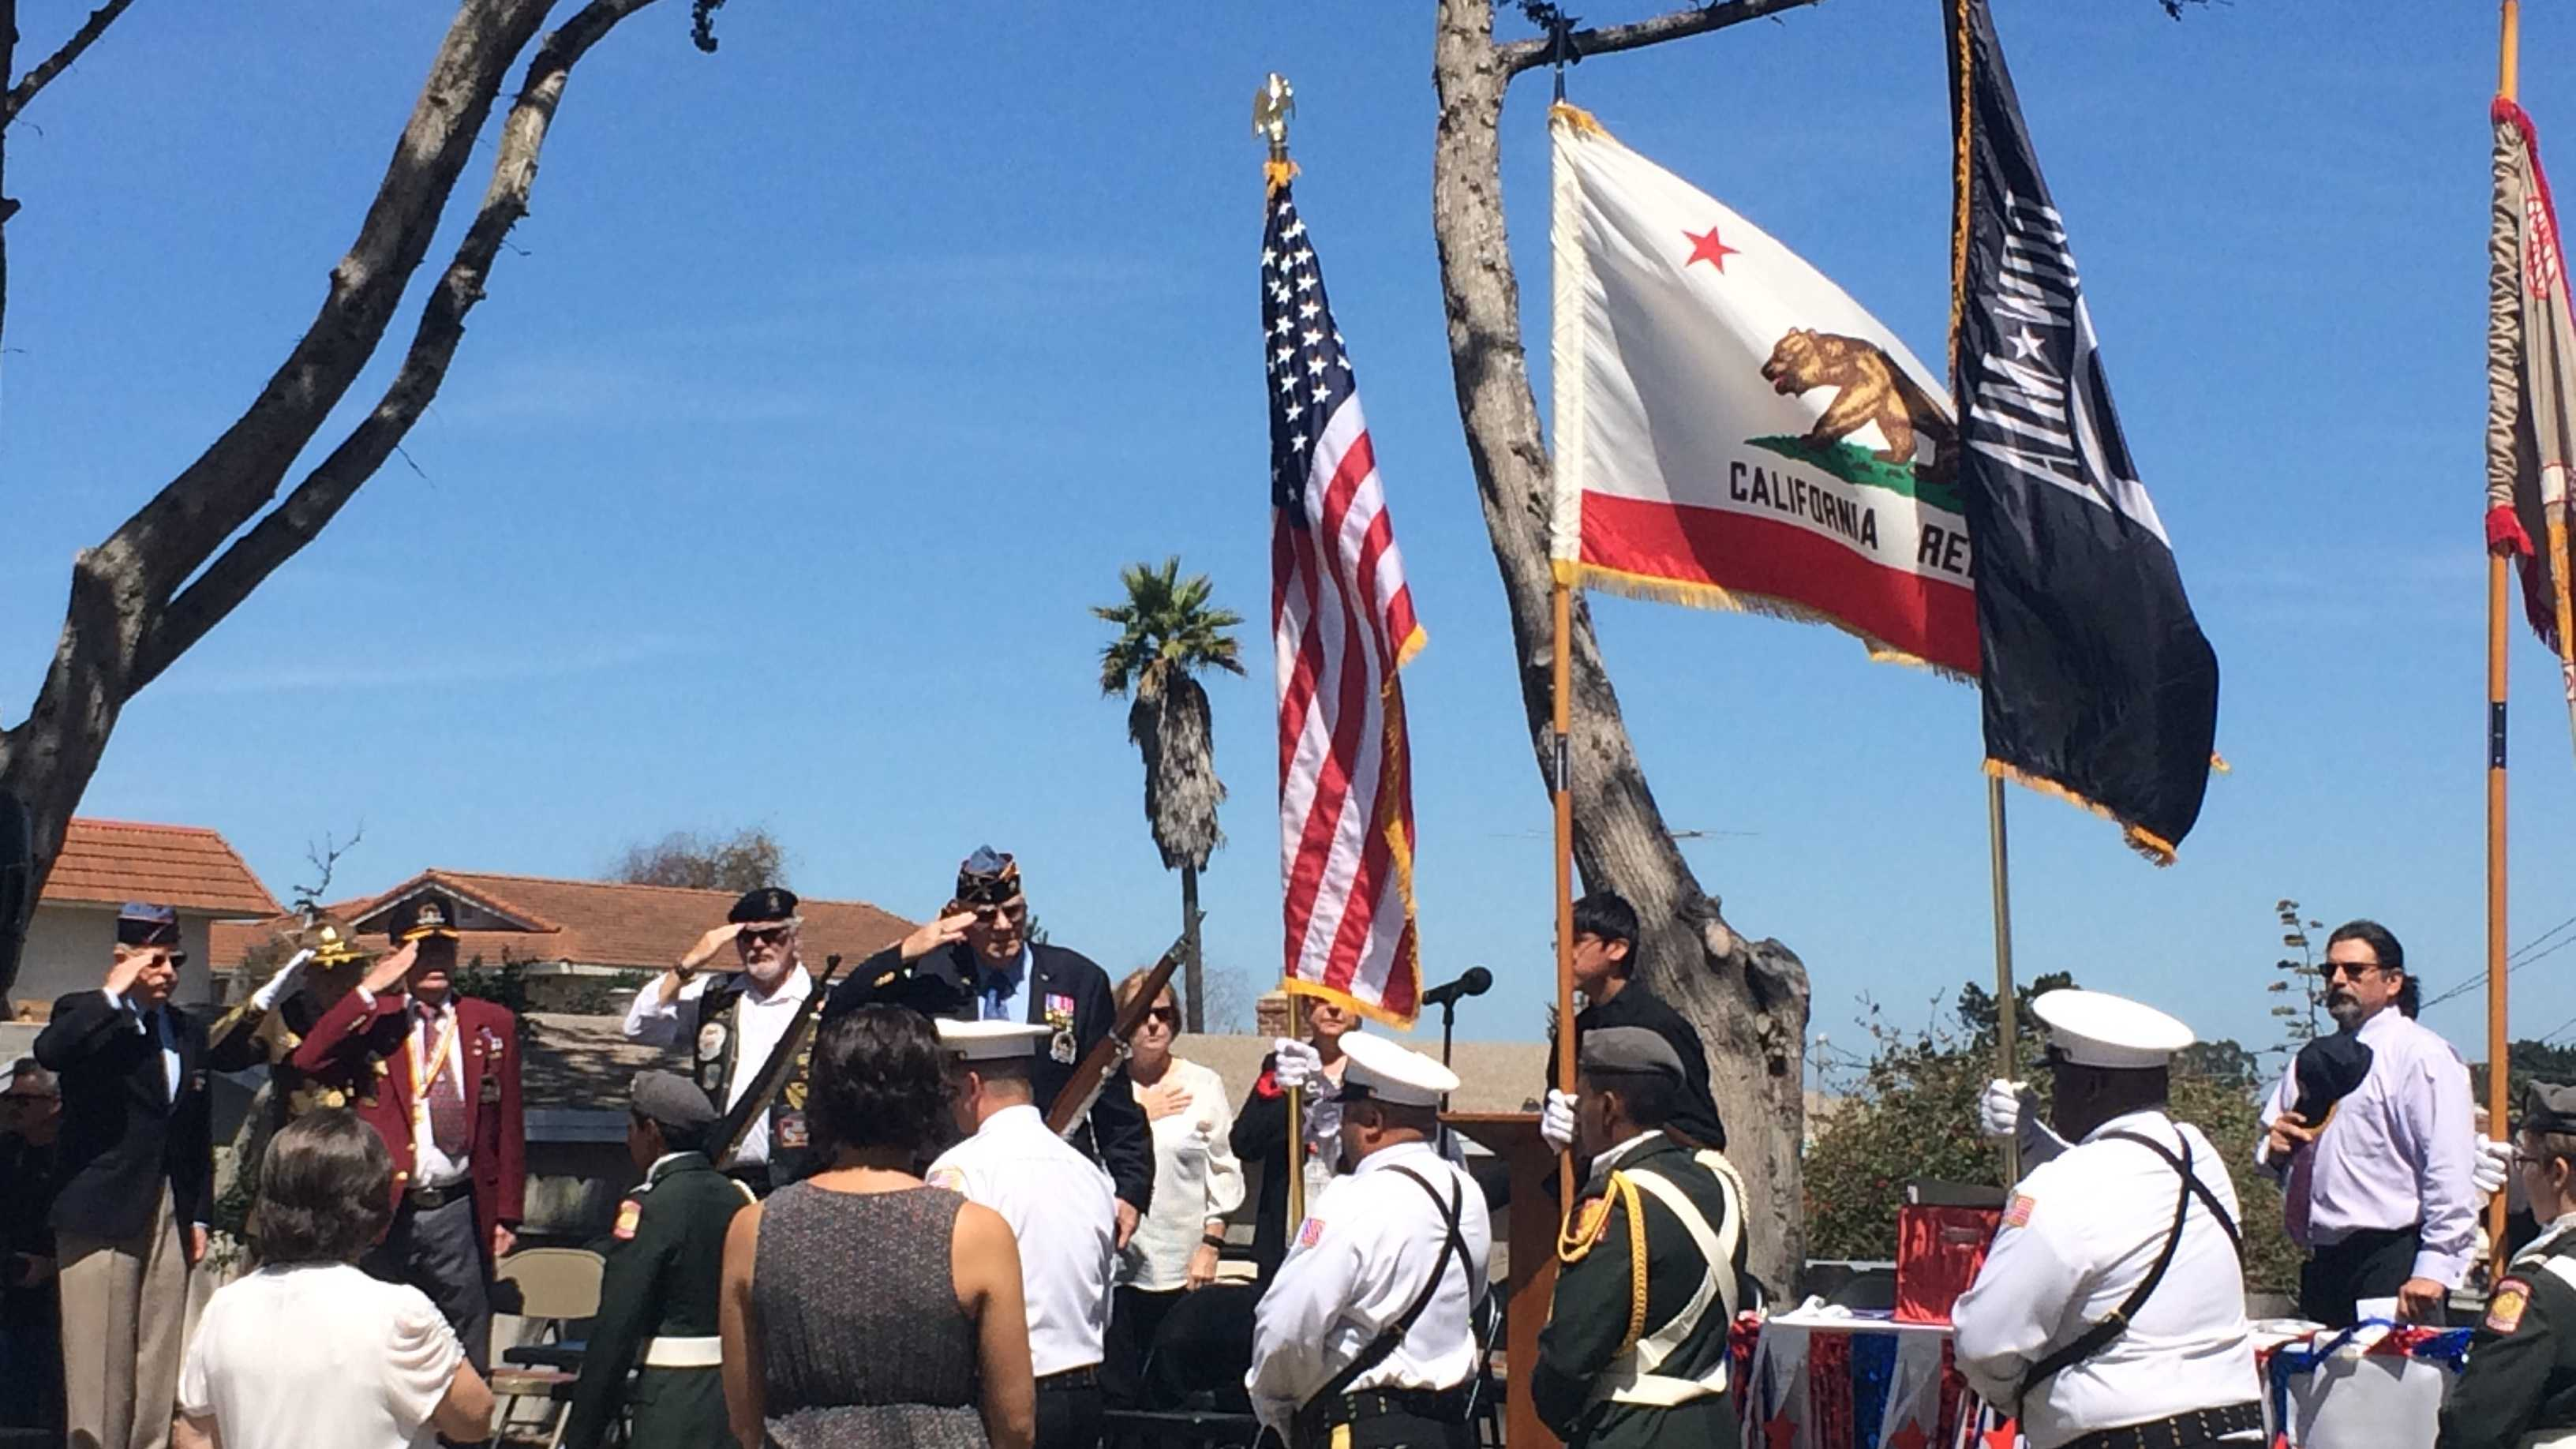 For nearly four decades, the military community of Marina has organized the city's Labor Day celebrations.